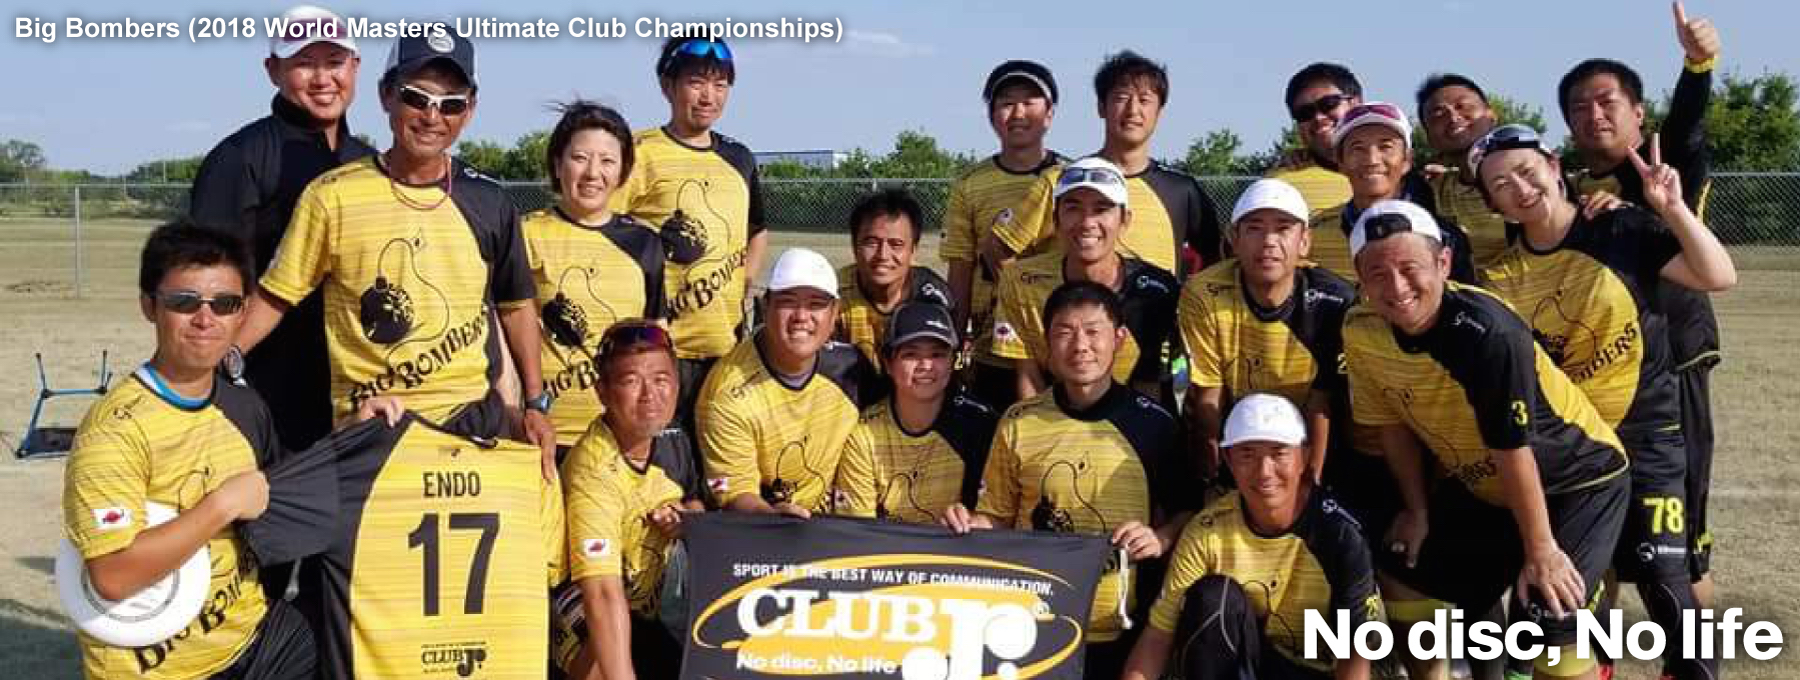 Big Bombers (2018 World Masters Ultimate Club Championships)